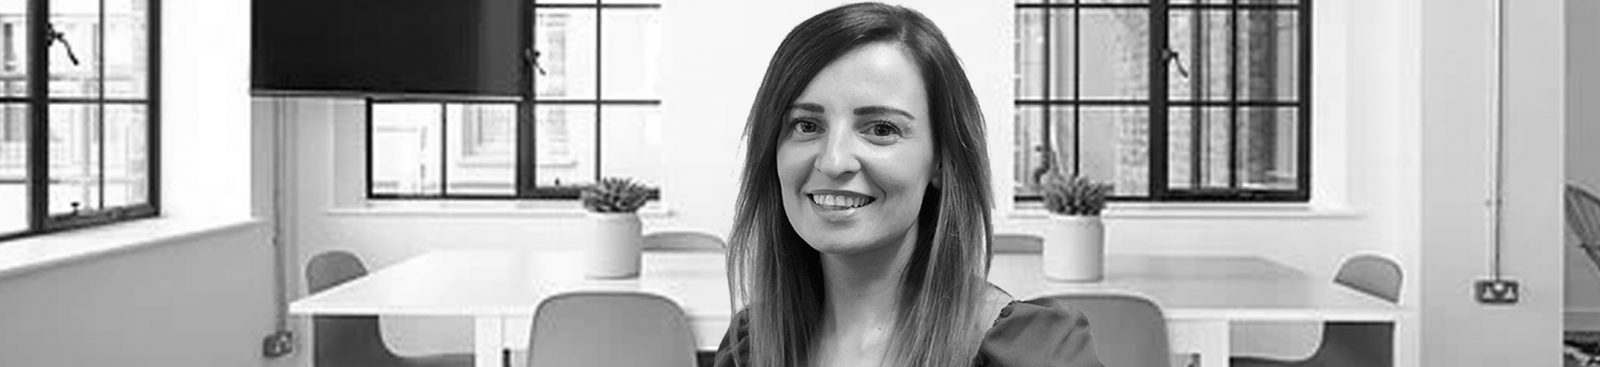 Staff Spotlight: A catch up with Marketing Manager, Carla image